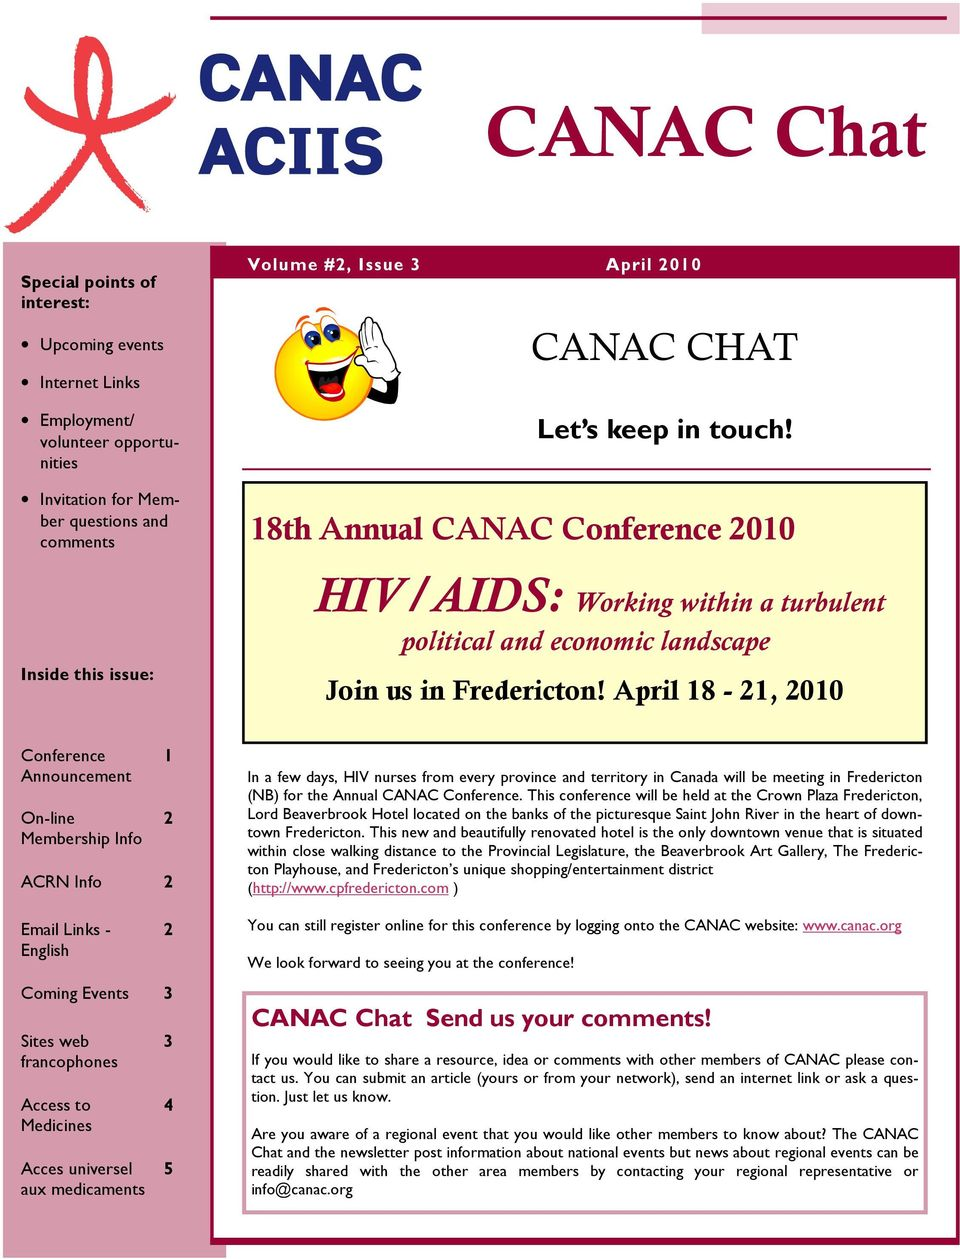 April 18-21, 2010 Conference Announcement On-line Membership Info 1 2 ACRN Info 2 Email Links - English 2 Coming Events 3 Sites web francophones Access to Medicines Acces universel aux medicaments 3